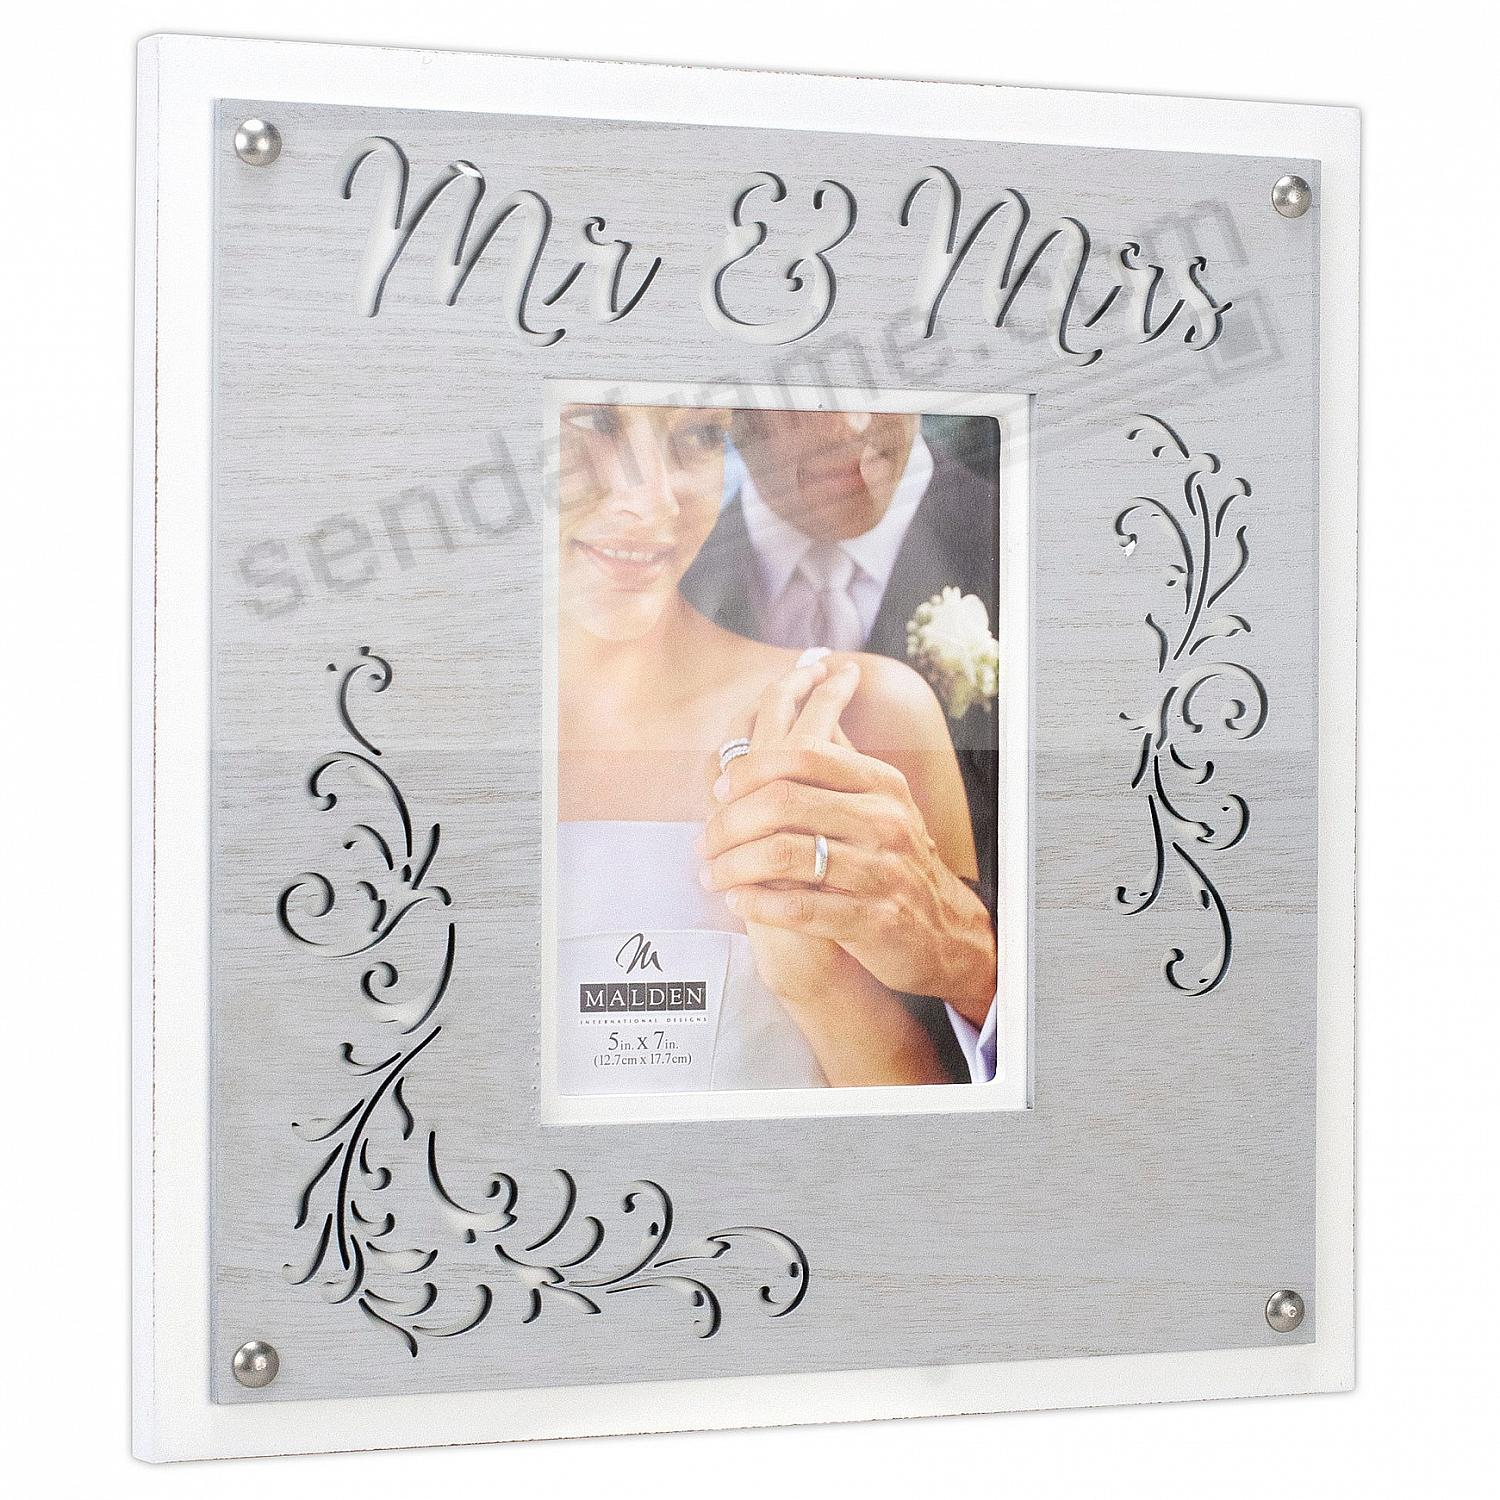 MR + MRS Lasercut frame 5x7 by Malden®